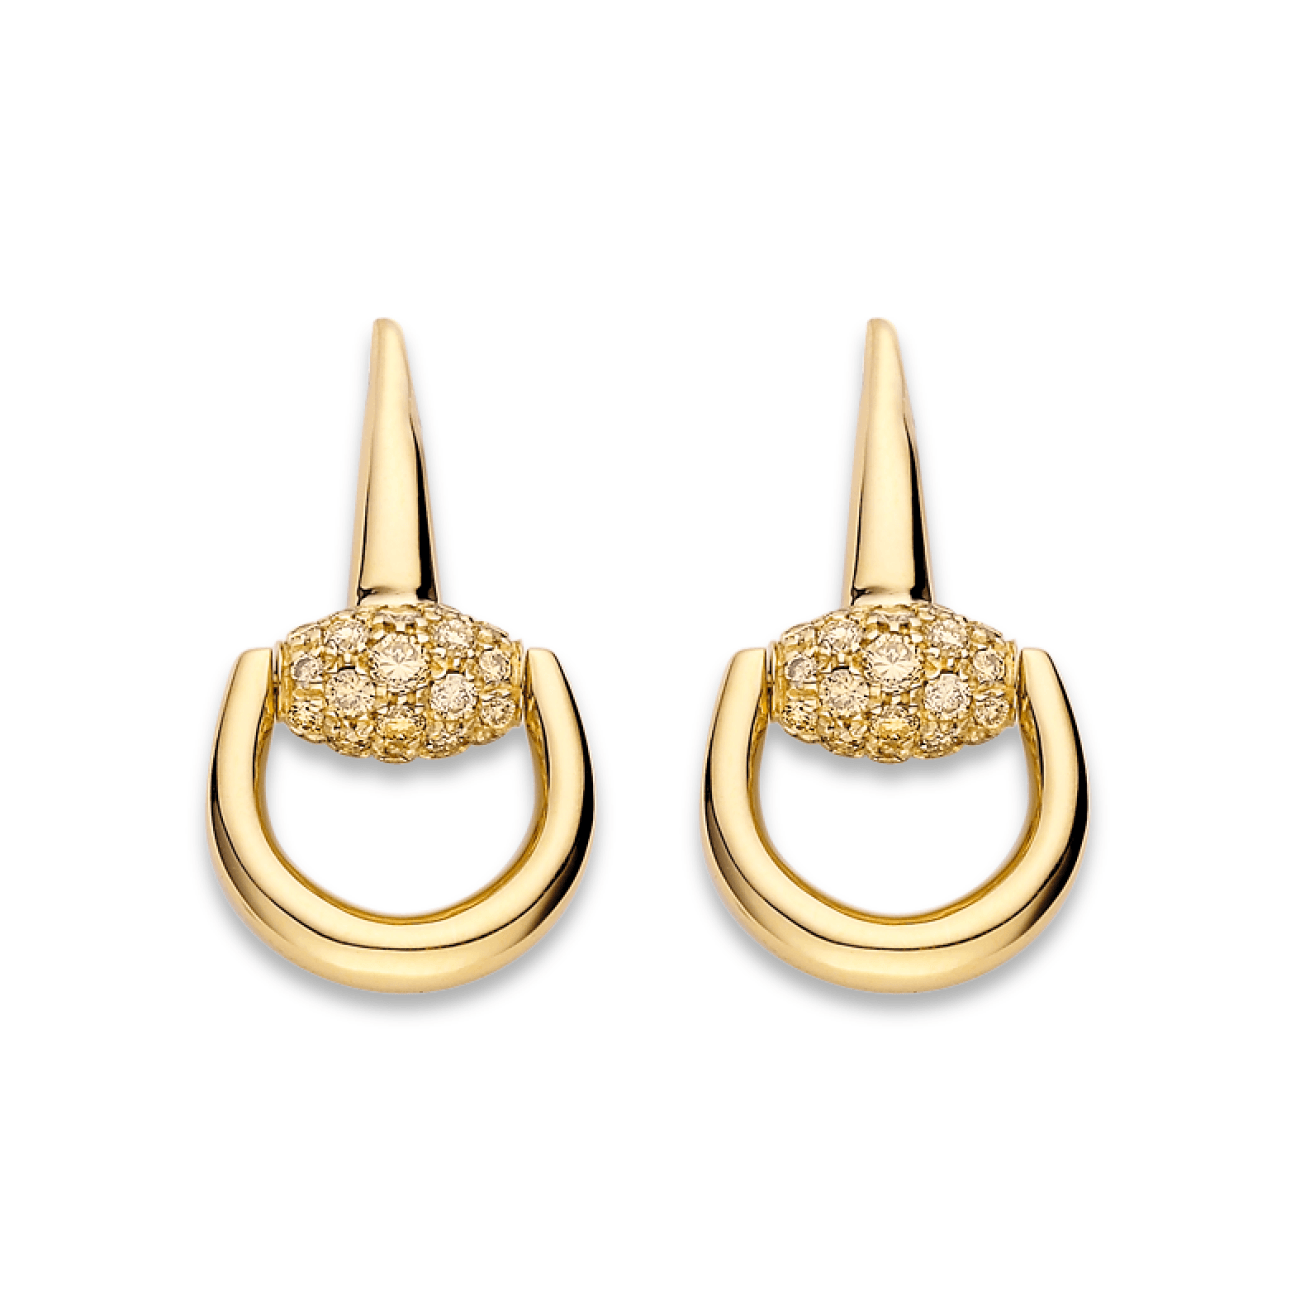 Gucci Jewelry - Horsebit brown diamond earrings | Manfredi Jewels